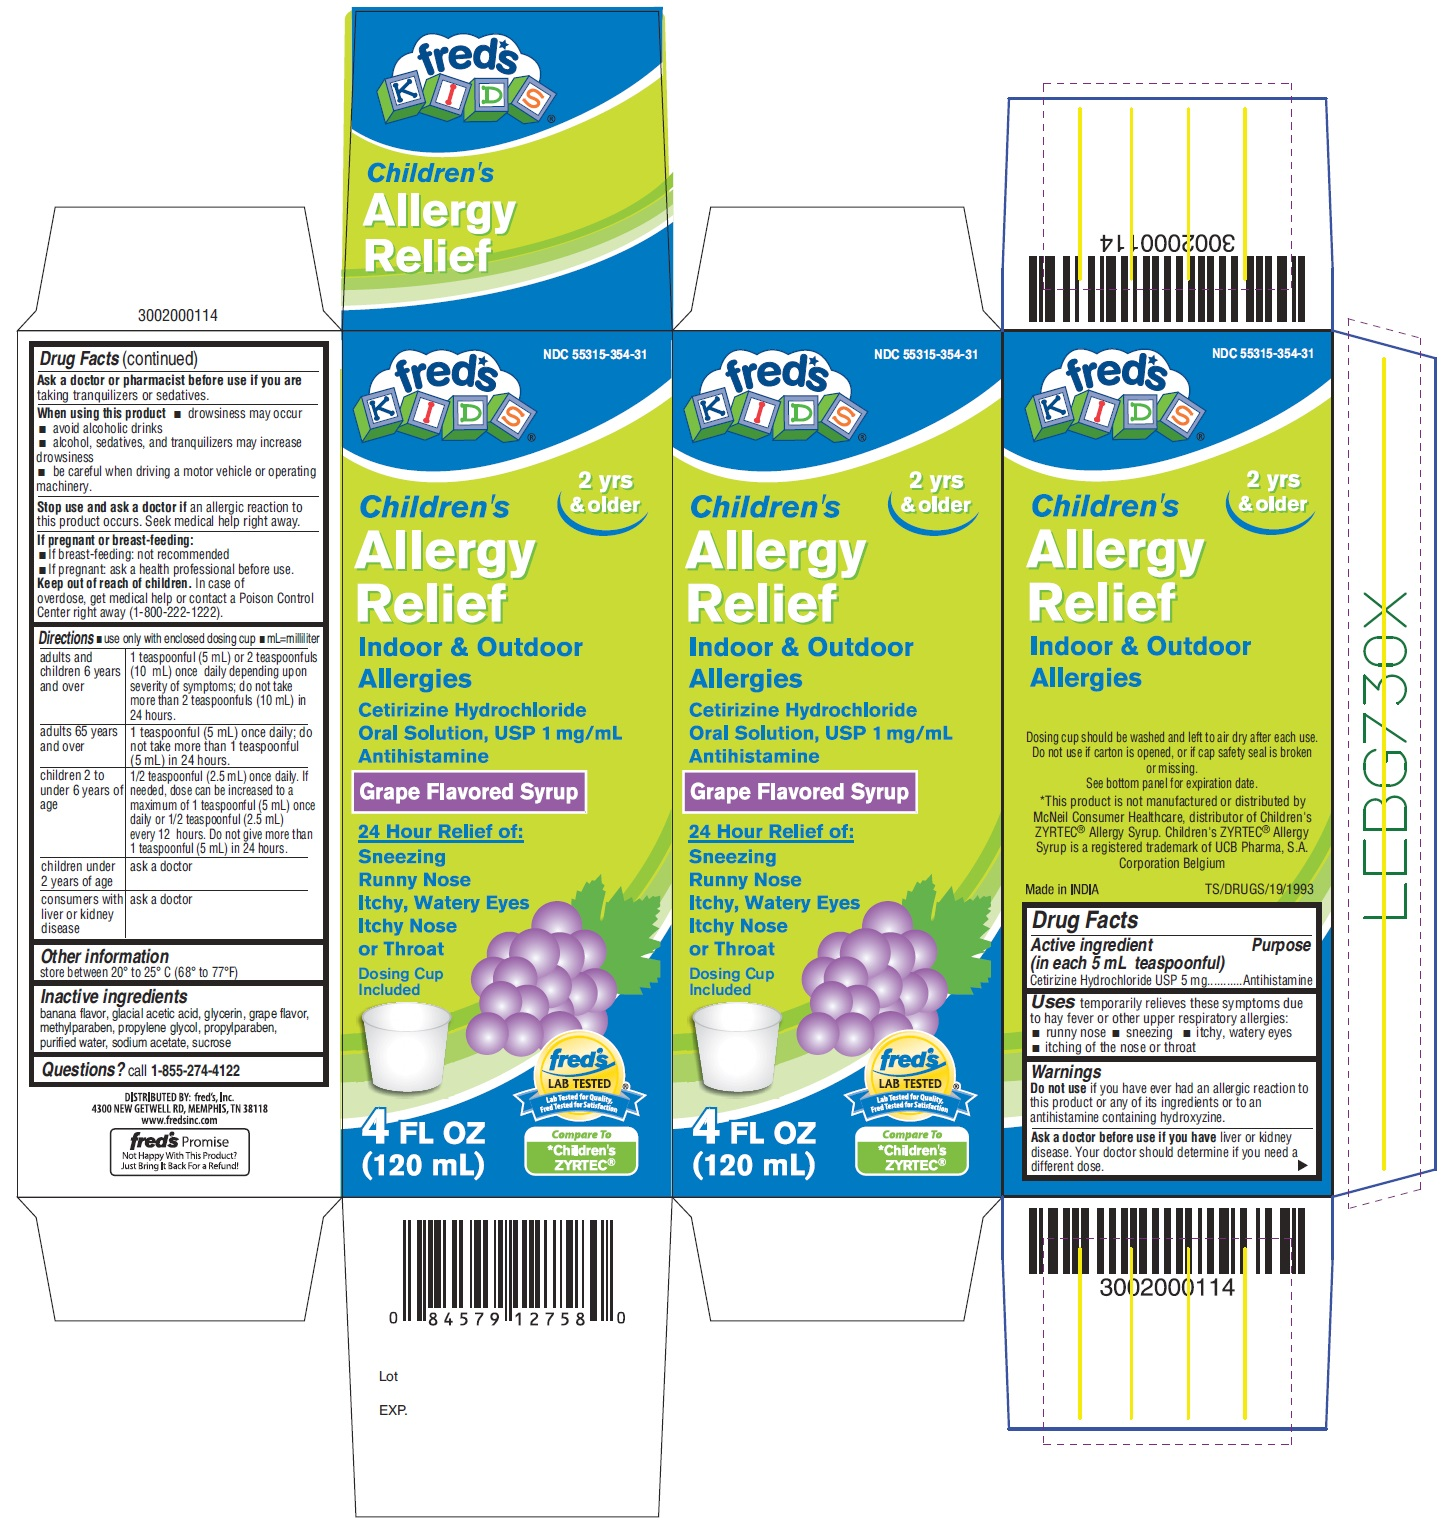 Childrens Allergy Relief (Cetirizine Hydrochloride) Solution [Fred's, Inc.]